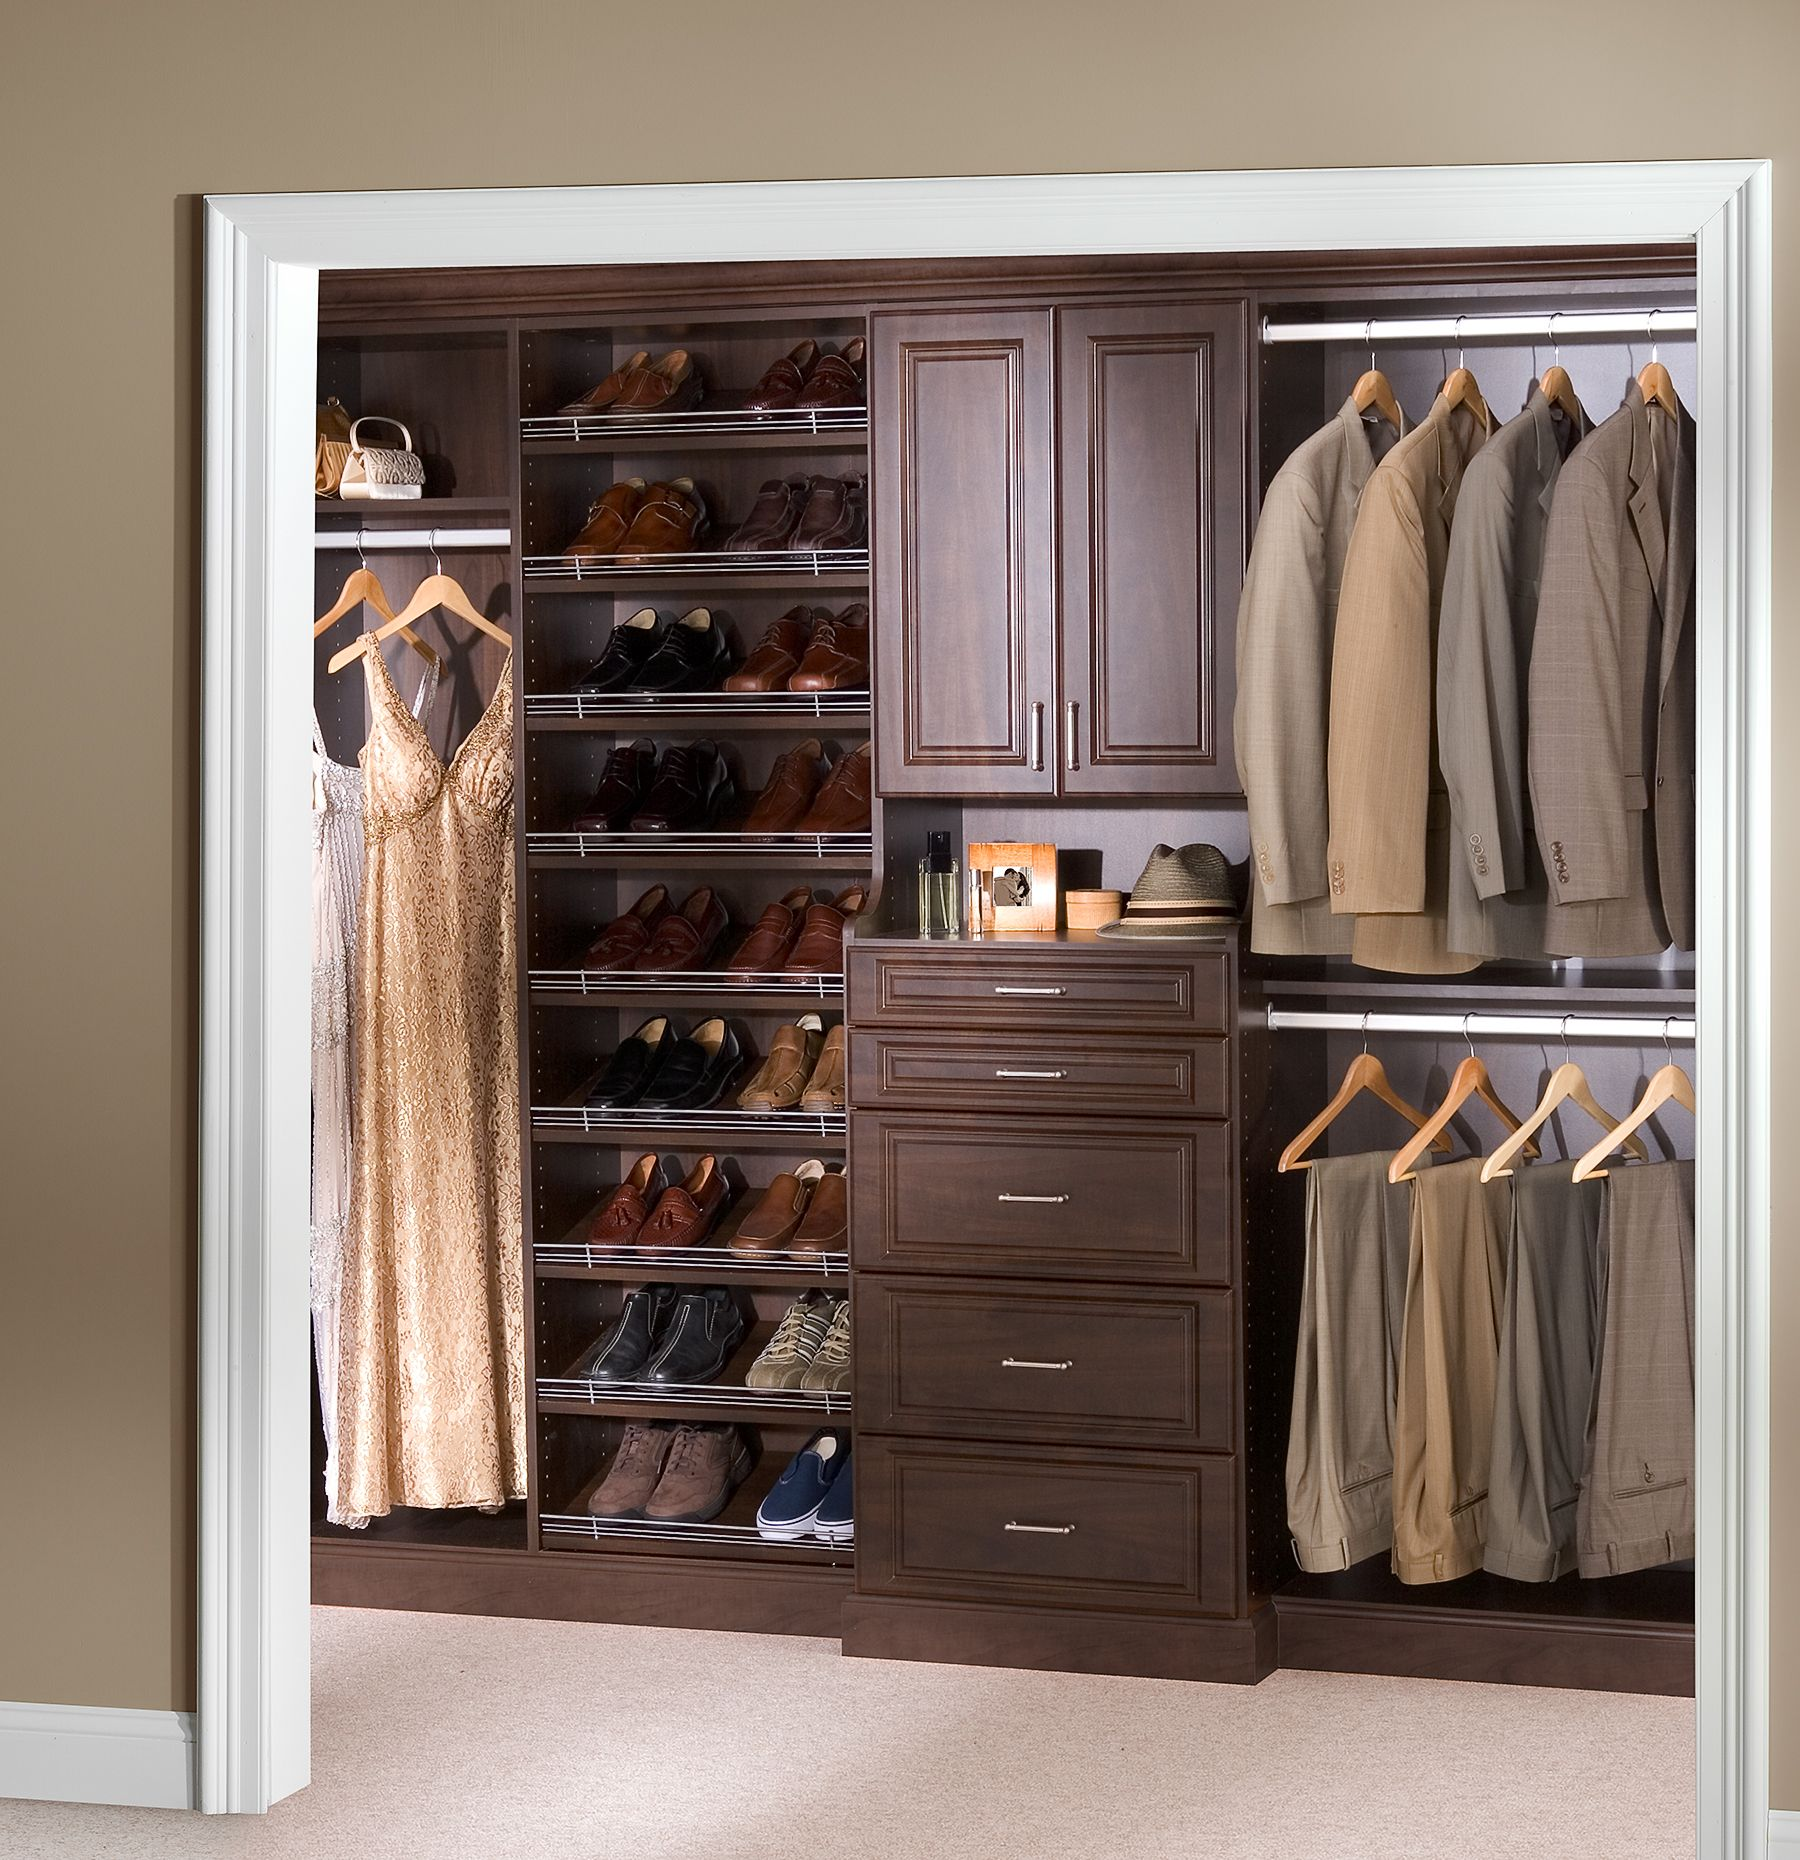 Closet Organization Systems O R G A N I Z E Pinterest: pictures of closet organizers